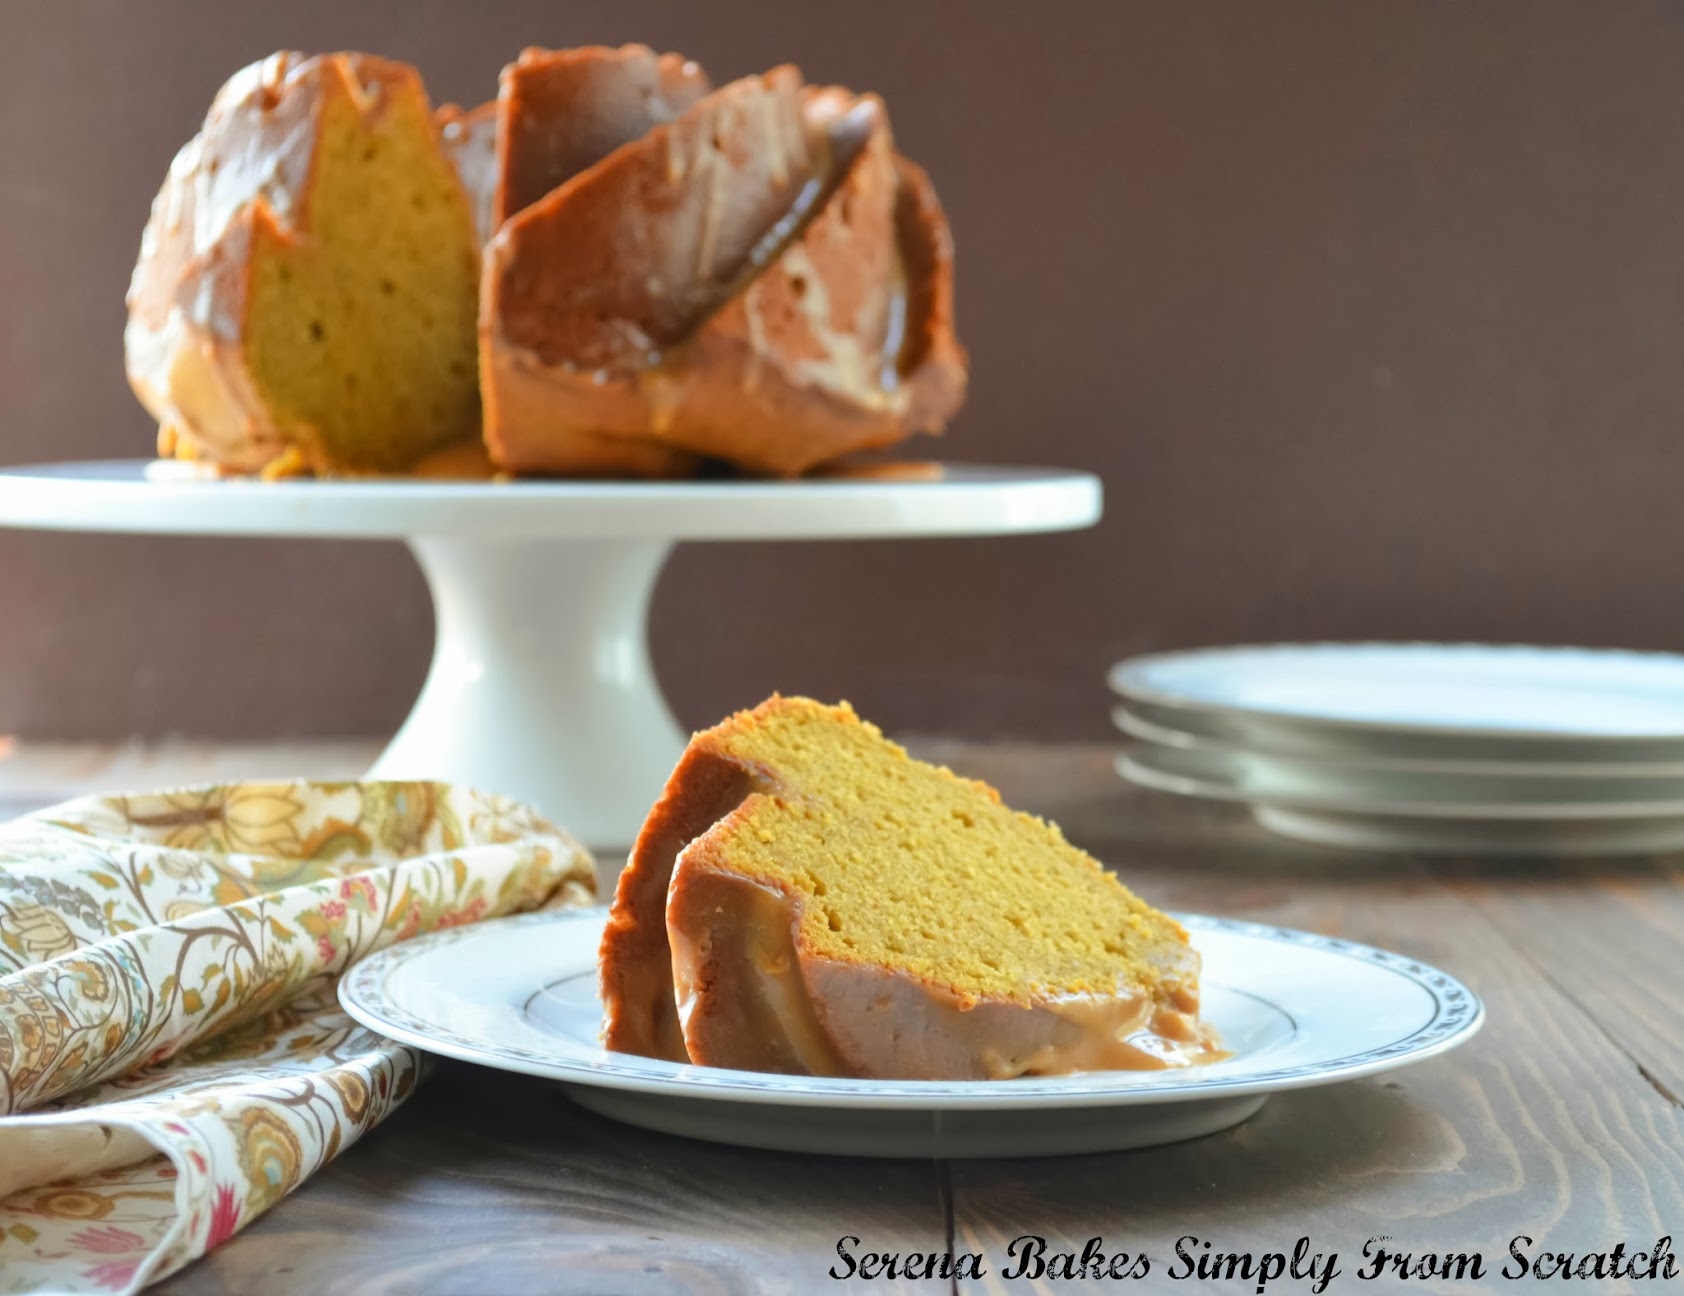 25-Top-Recipe-Post-Of-2013-Pumpkin-Spice-Bundt-Cake-Caramel-Icing.jpg